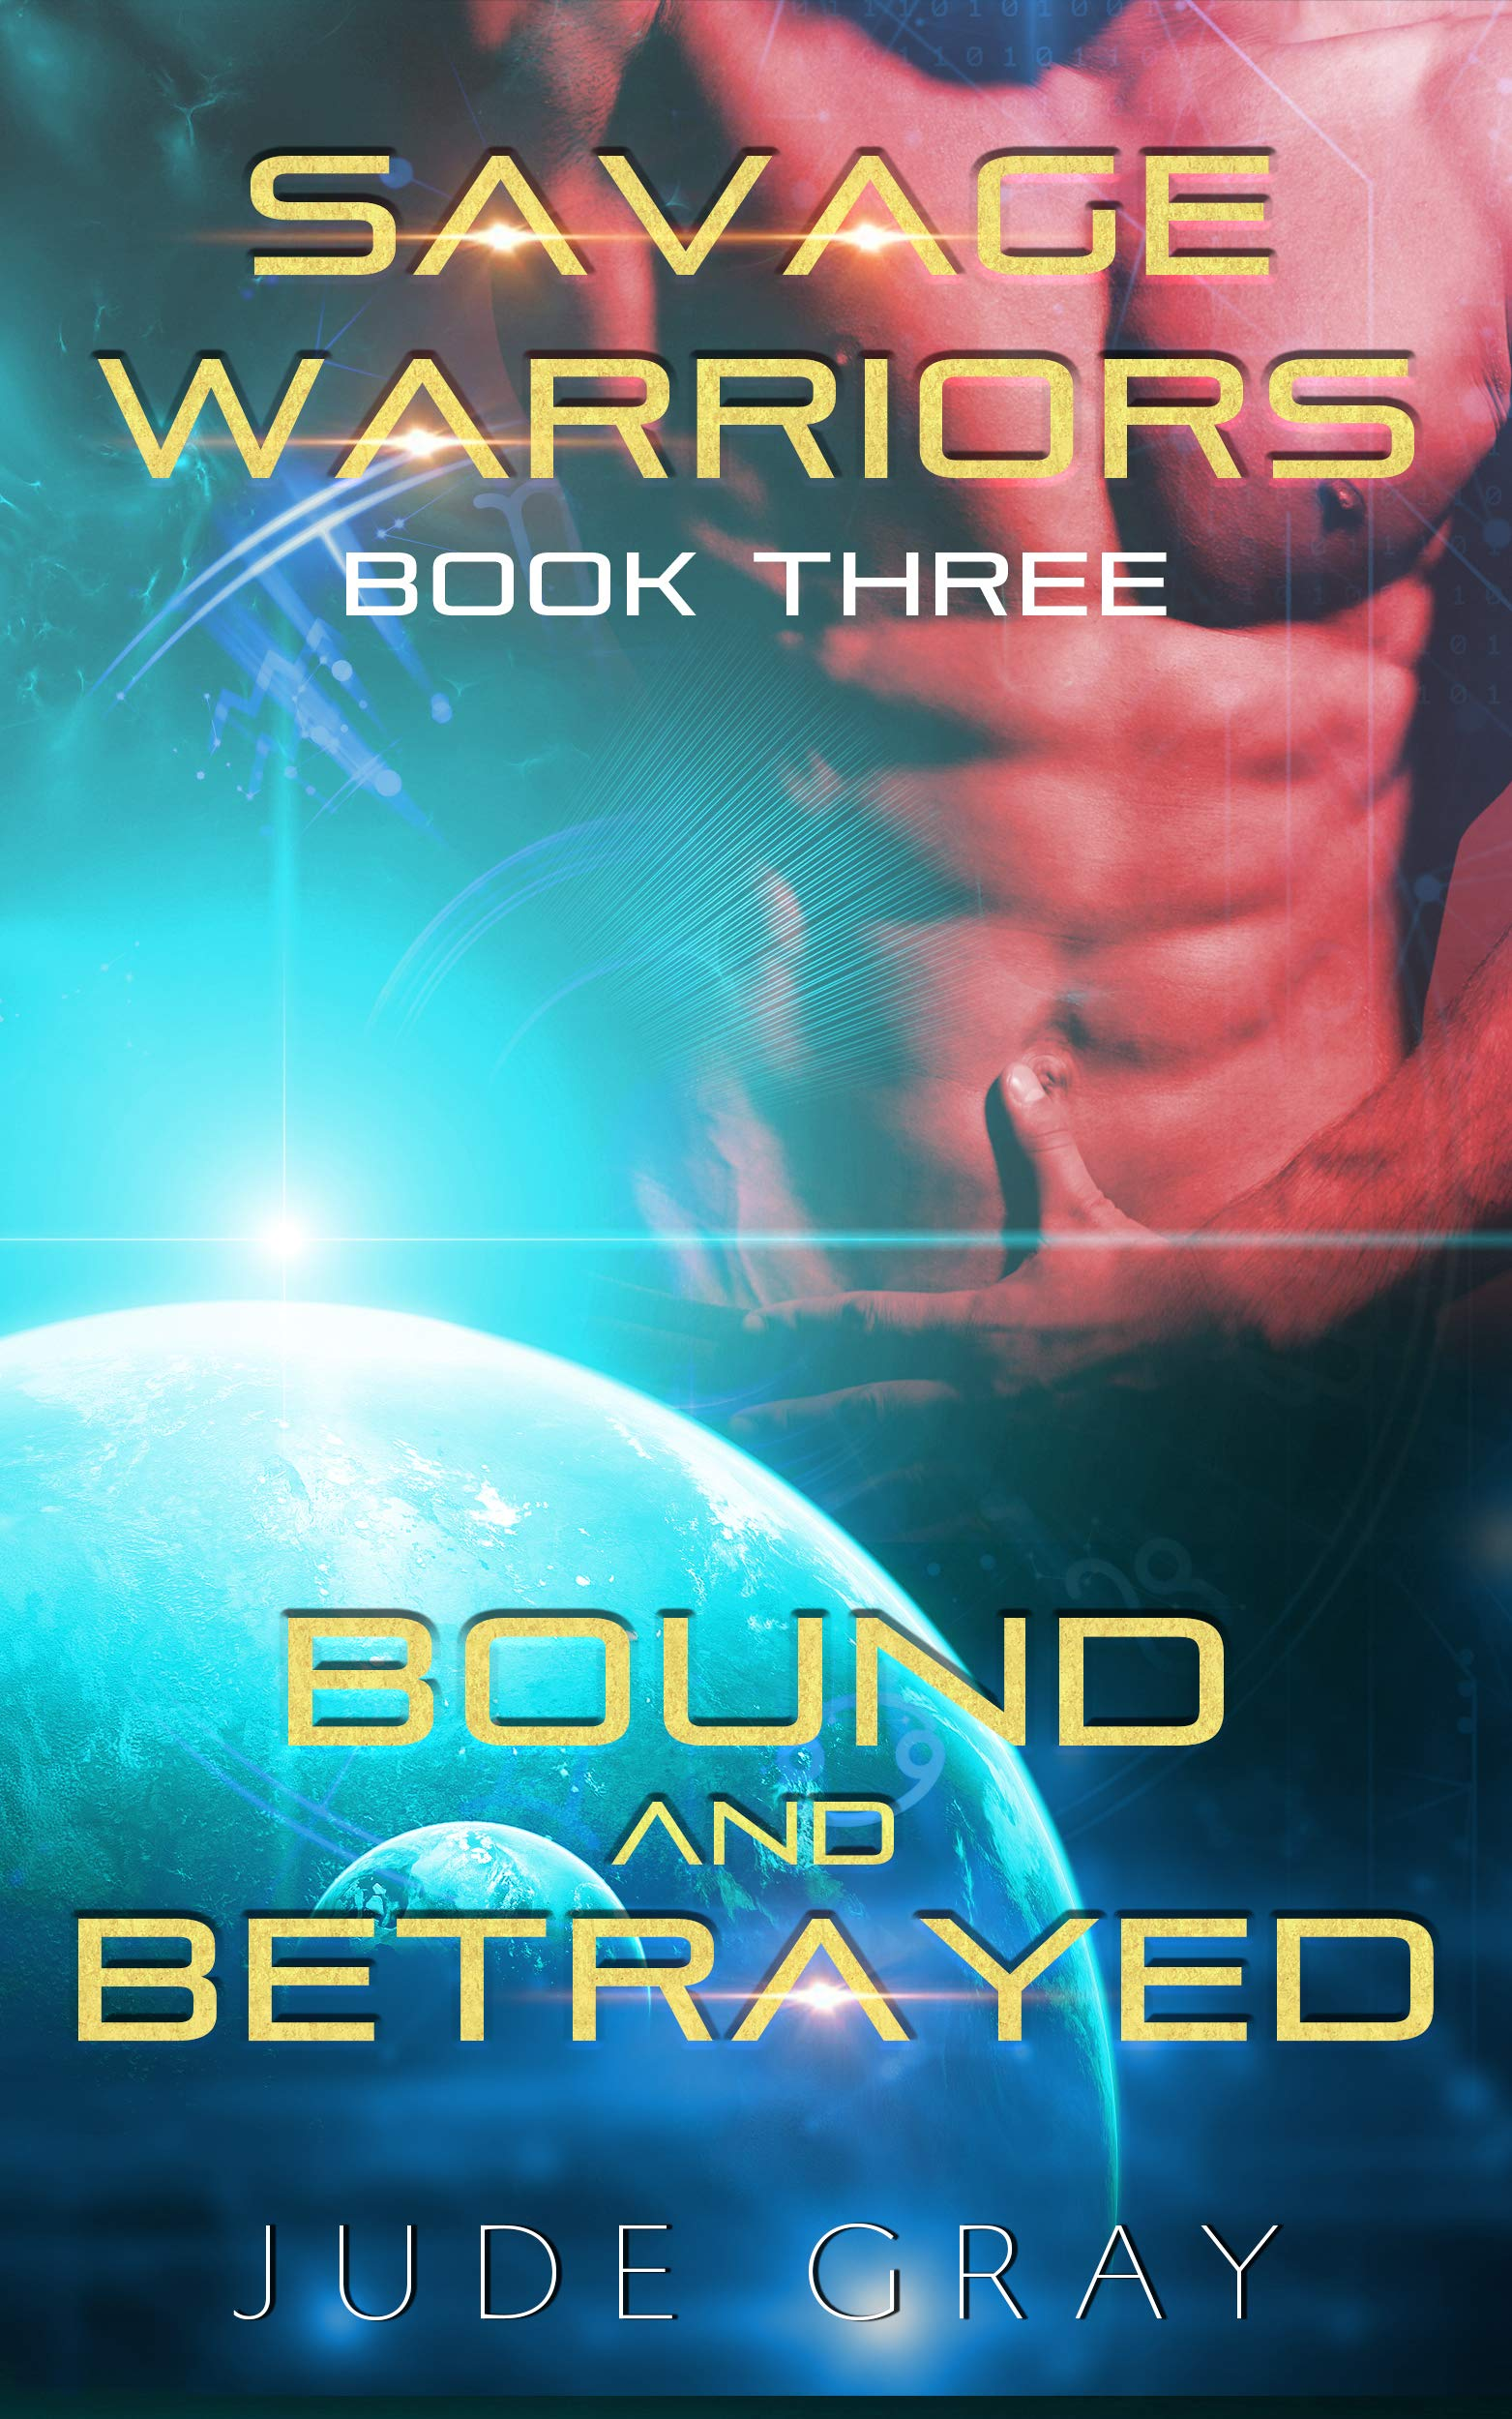 Bound and Betrayed: An Alien Abduction Romance Series (Savage Warriors Book 3) (English Edition)